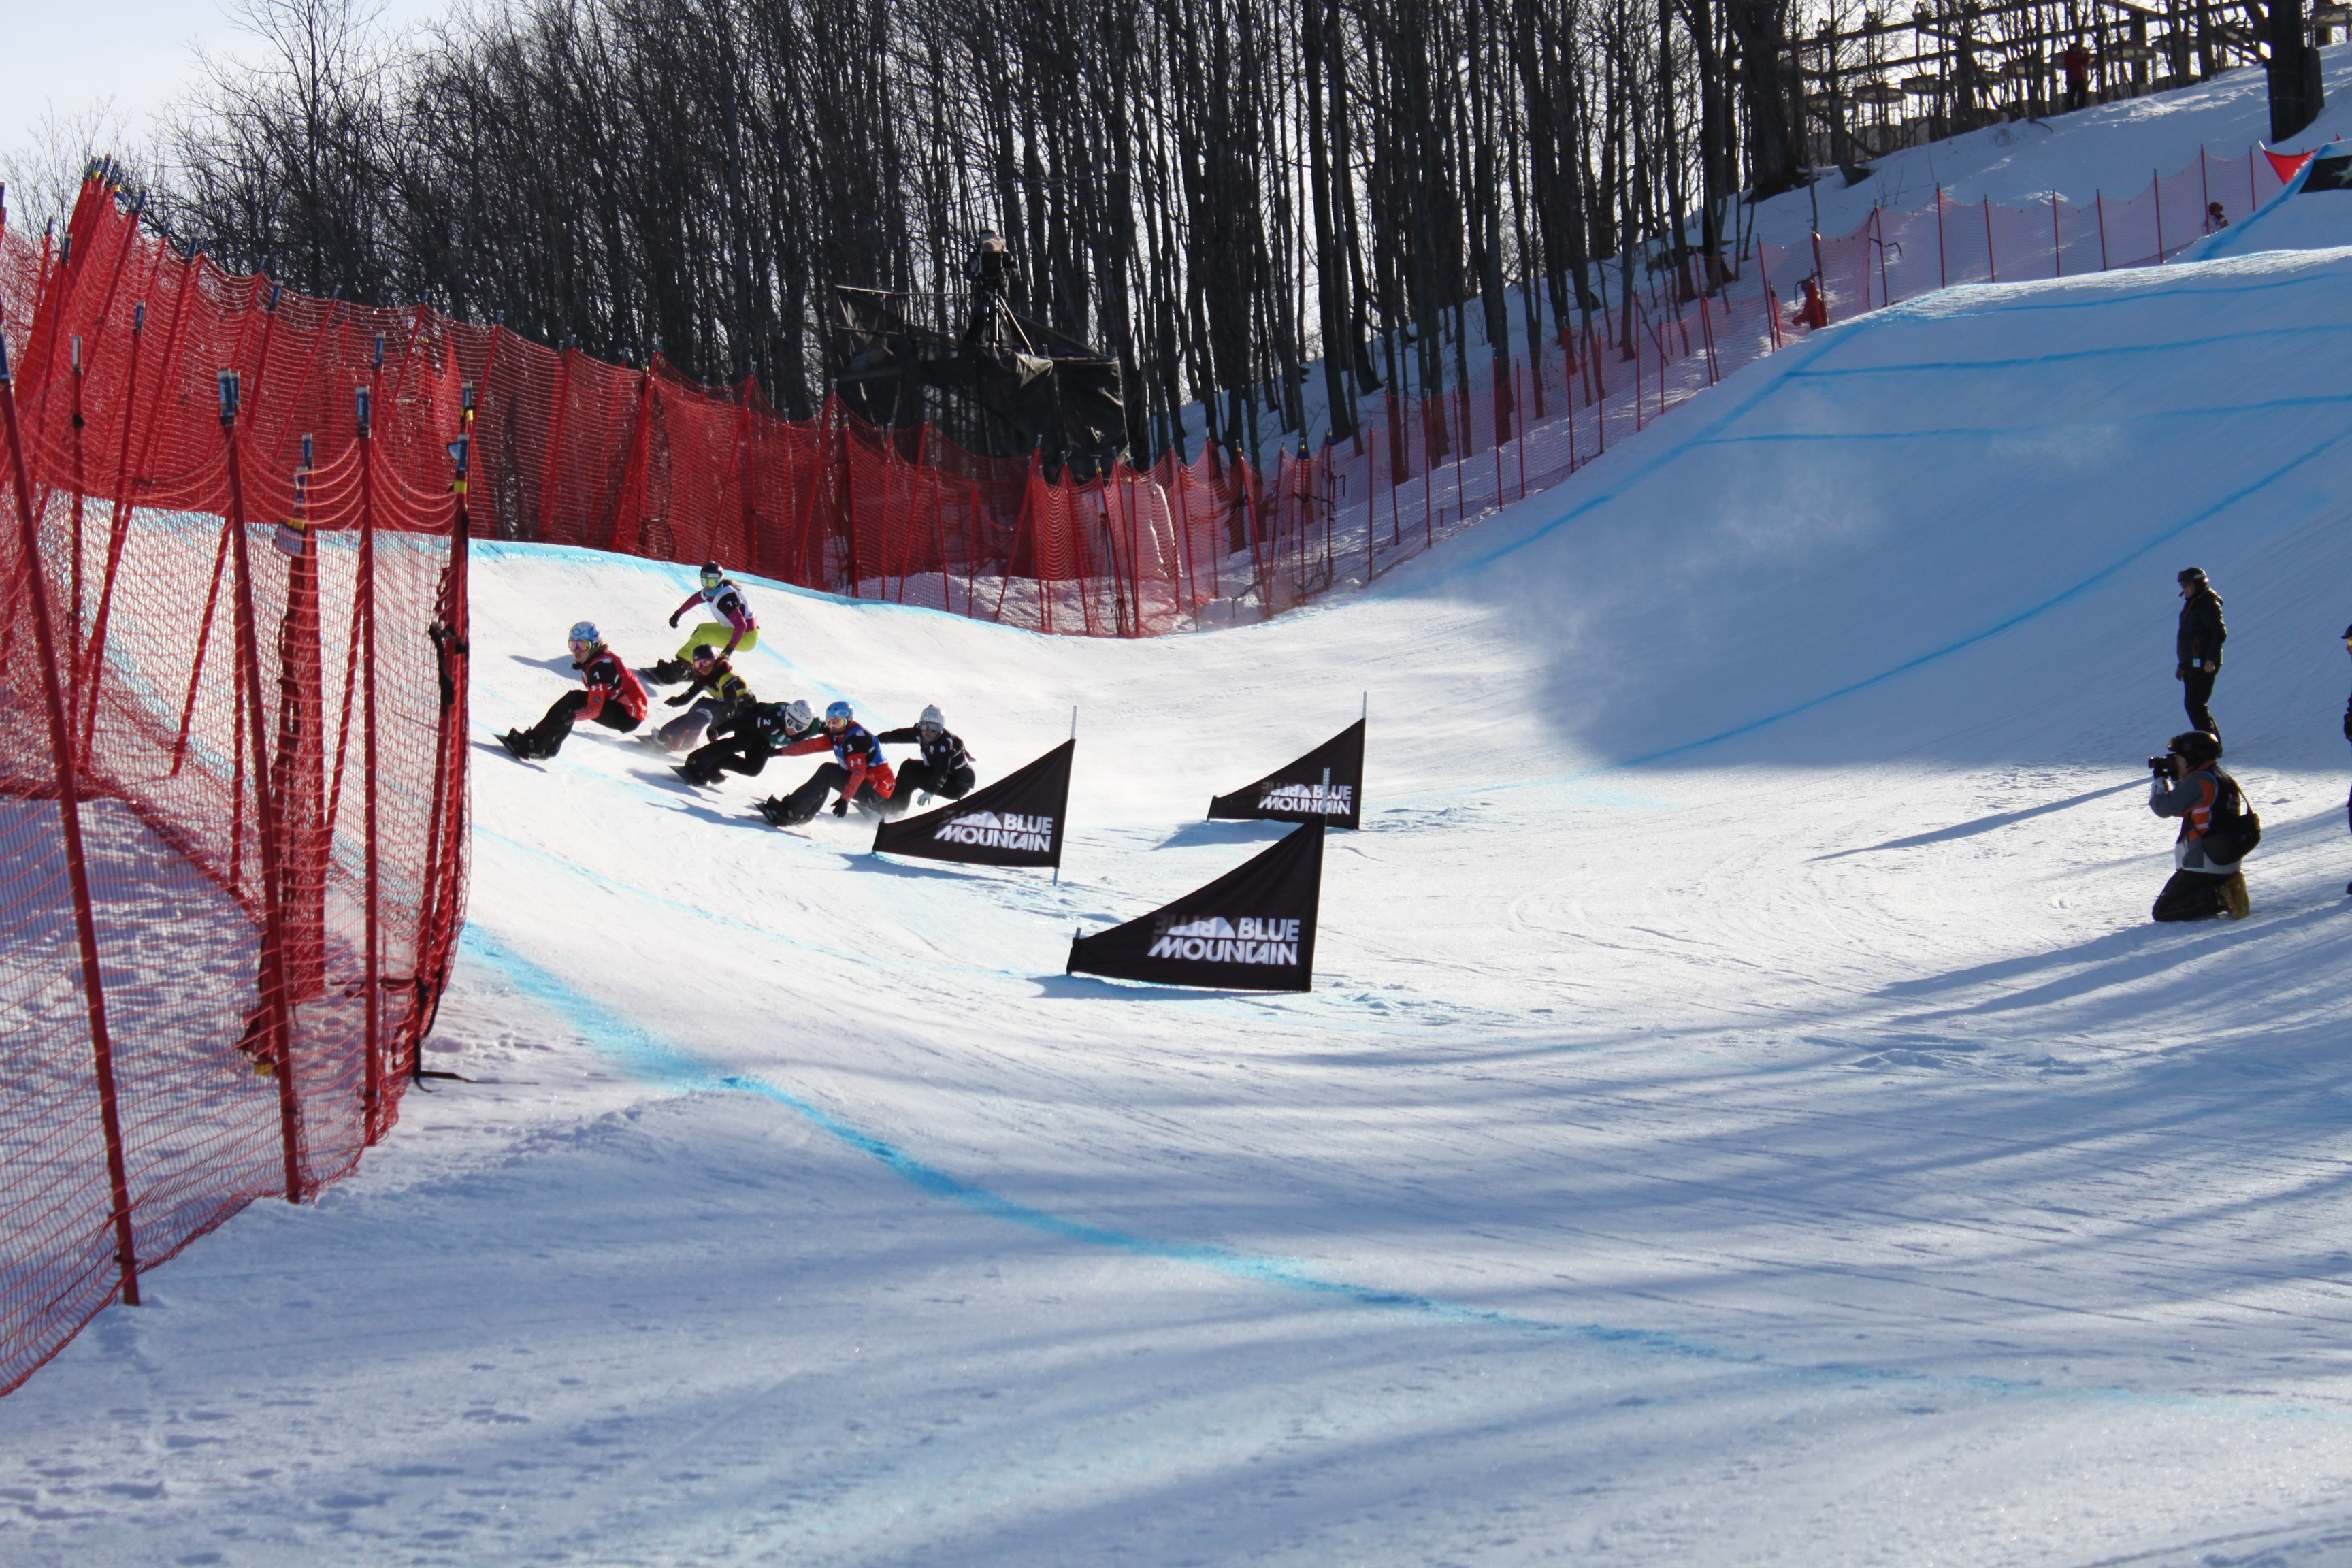 World Snowsports Events Group